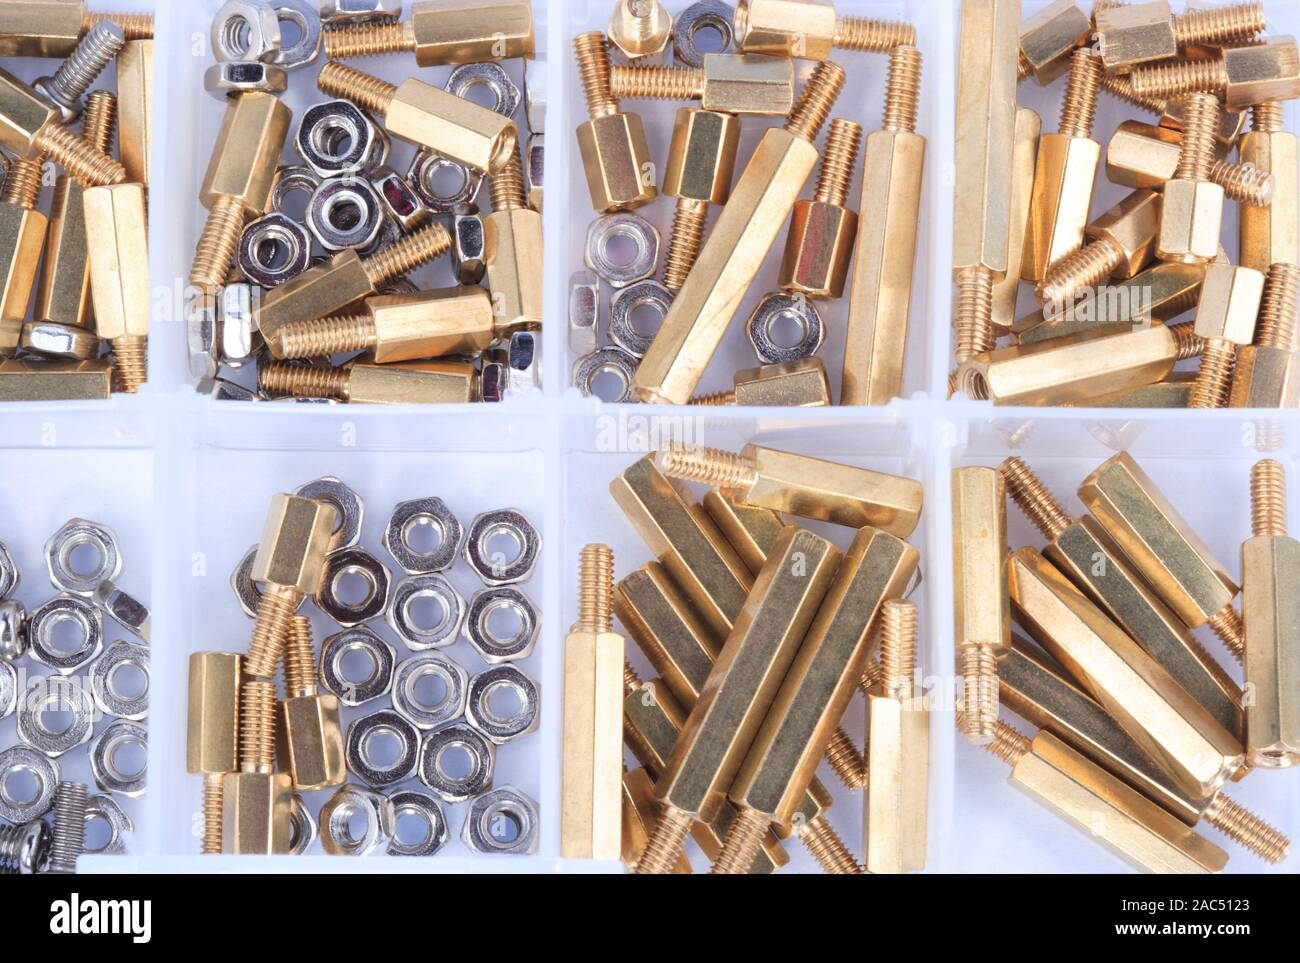 Brass Standoff Spacer Male and Female set in plastic container Stock Photo